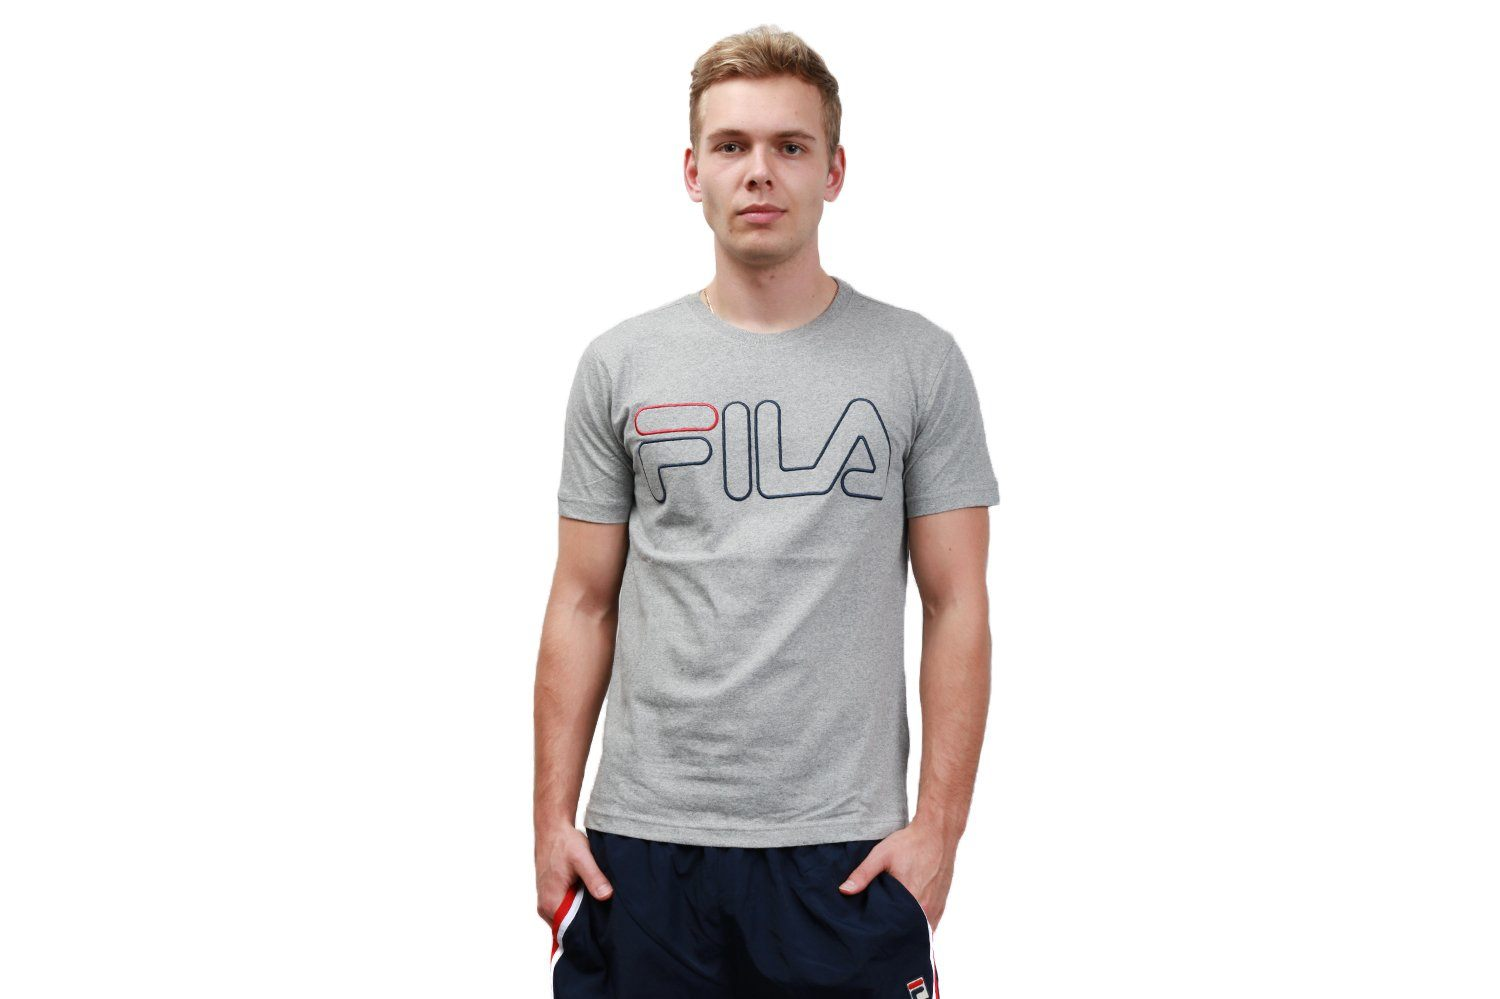 BOROUGH TEE- LM171B43 MENS SOFTGOODS FILA